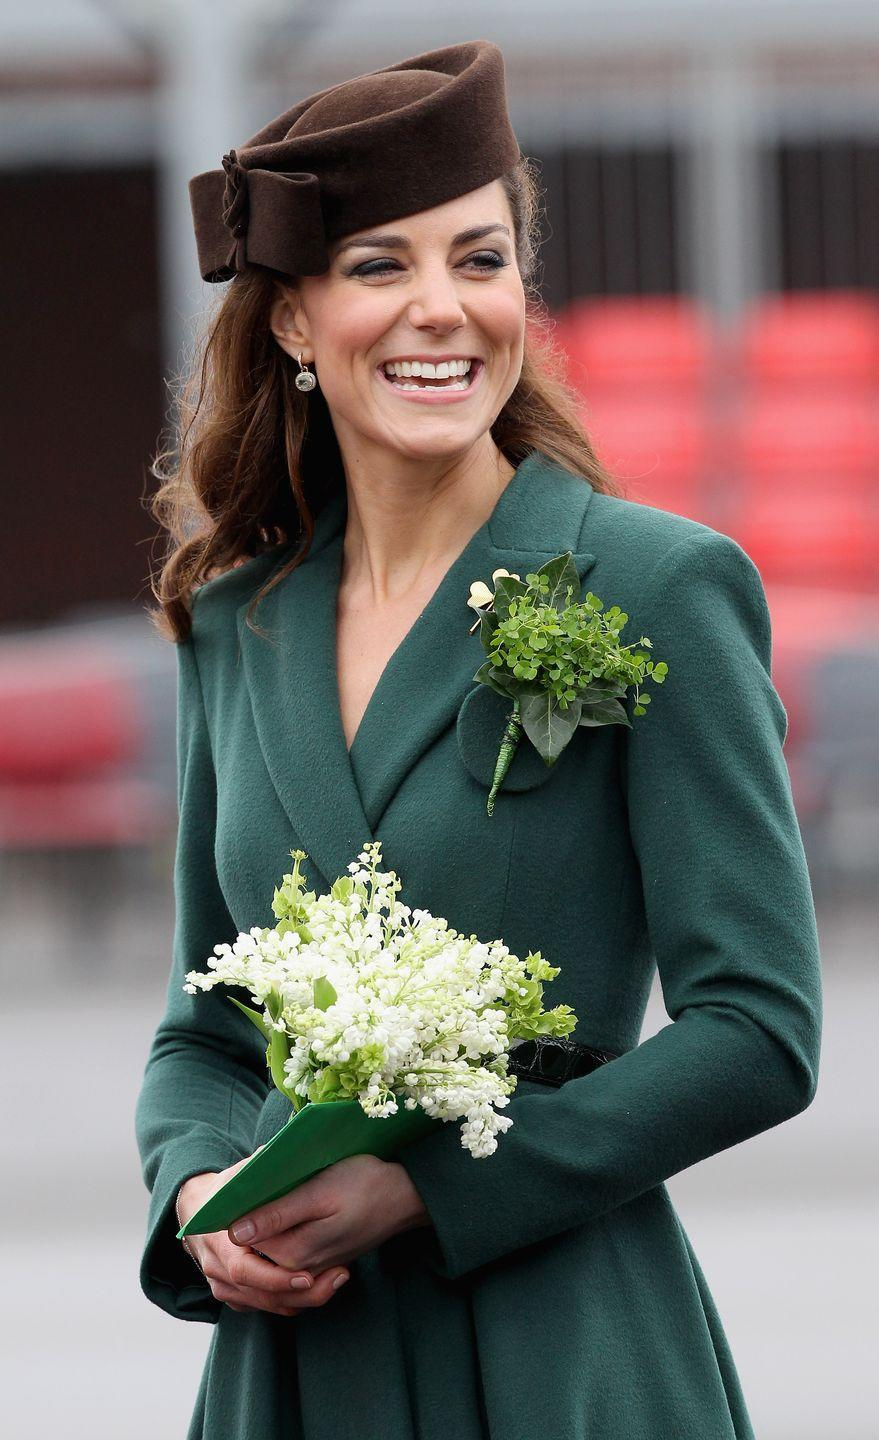 "<p>Settling into her Duchess duties, Kate Middleton visited the Aldershot Barracks in Hounslow for the annual St. Patrick's Day parade in 2012. Middleton presented shamrocks to the Irish Guards, a tradition that <a href=""https://www.townandcountrymag.com/society/tradition/g26838499/kate-middleton-st-patricks-day-shamrocks-irish-guards-photos/"" rel=""nofollow noopener"" target=""_blank"" data-ylk=""slk:dates back to 1901"" class=""link rapid-noclick-resp"">dates back to 1901</a>. <br></p>"